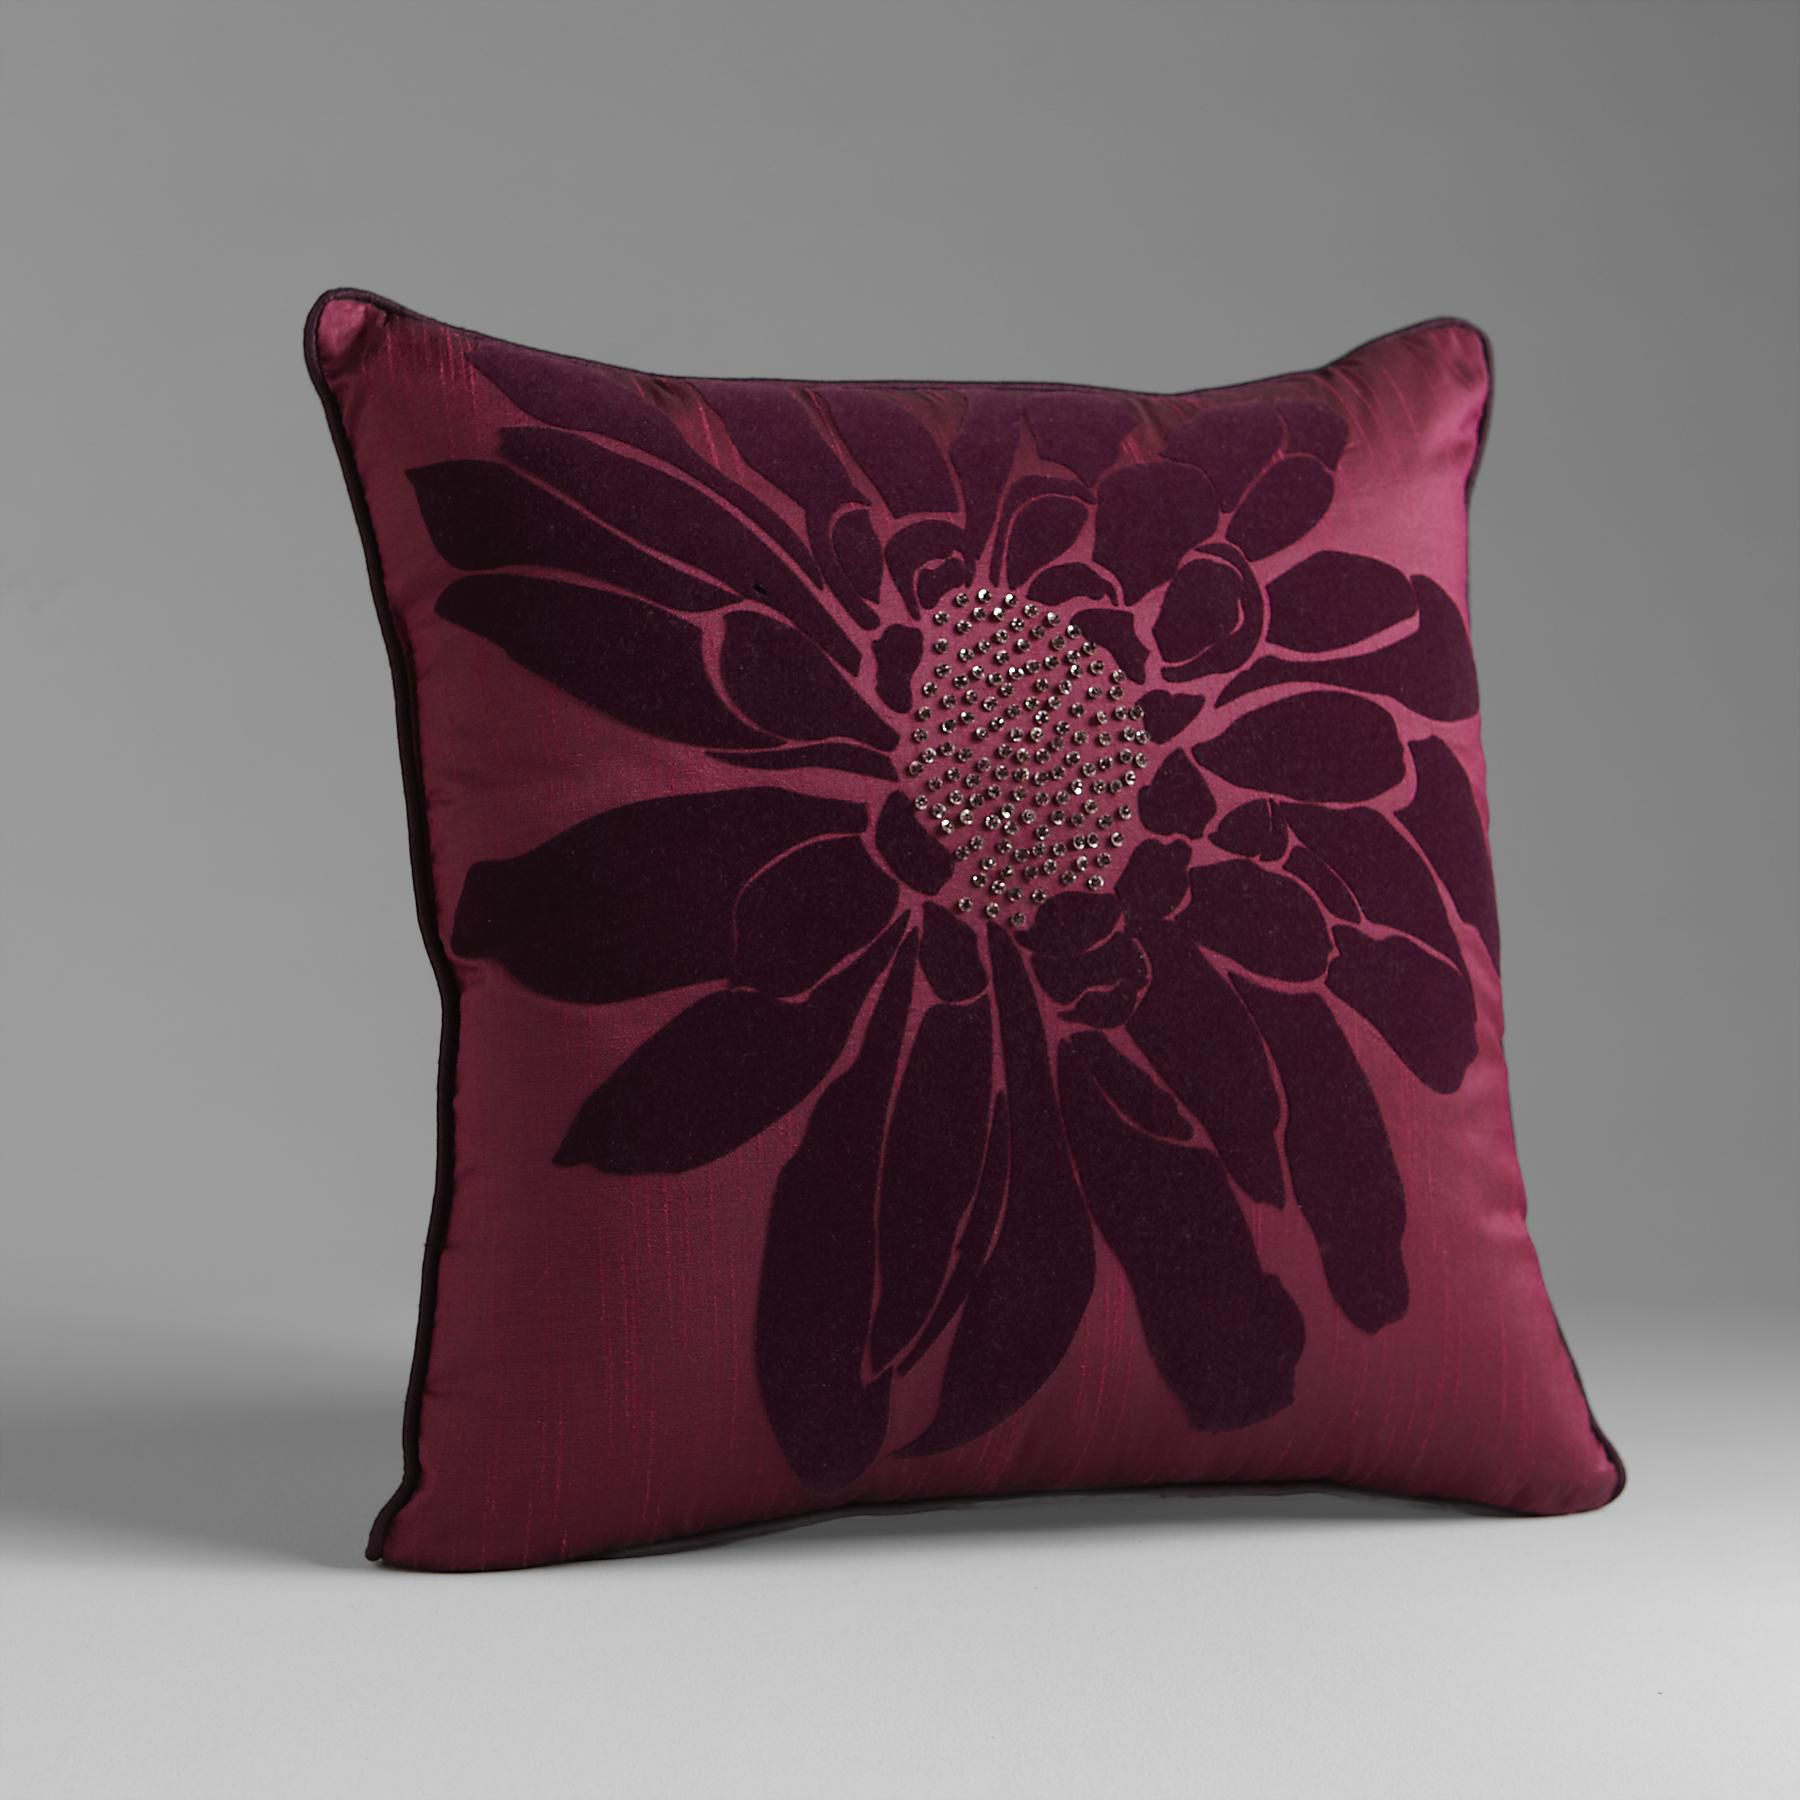 Floral Fantasy Decorative Pillow Pearl